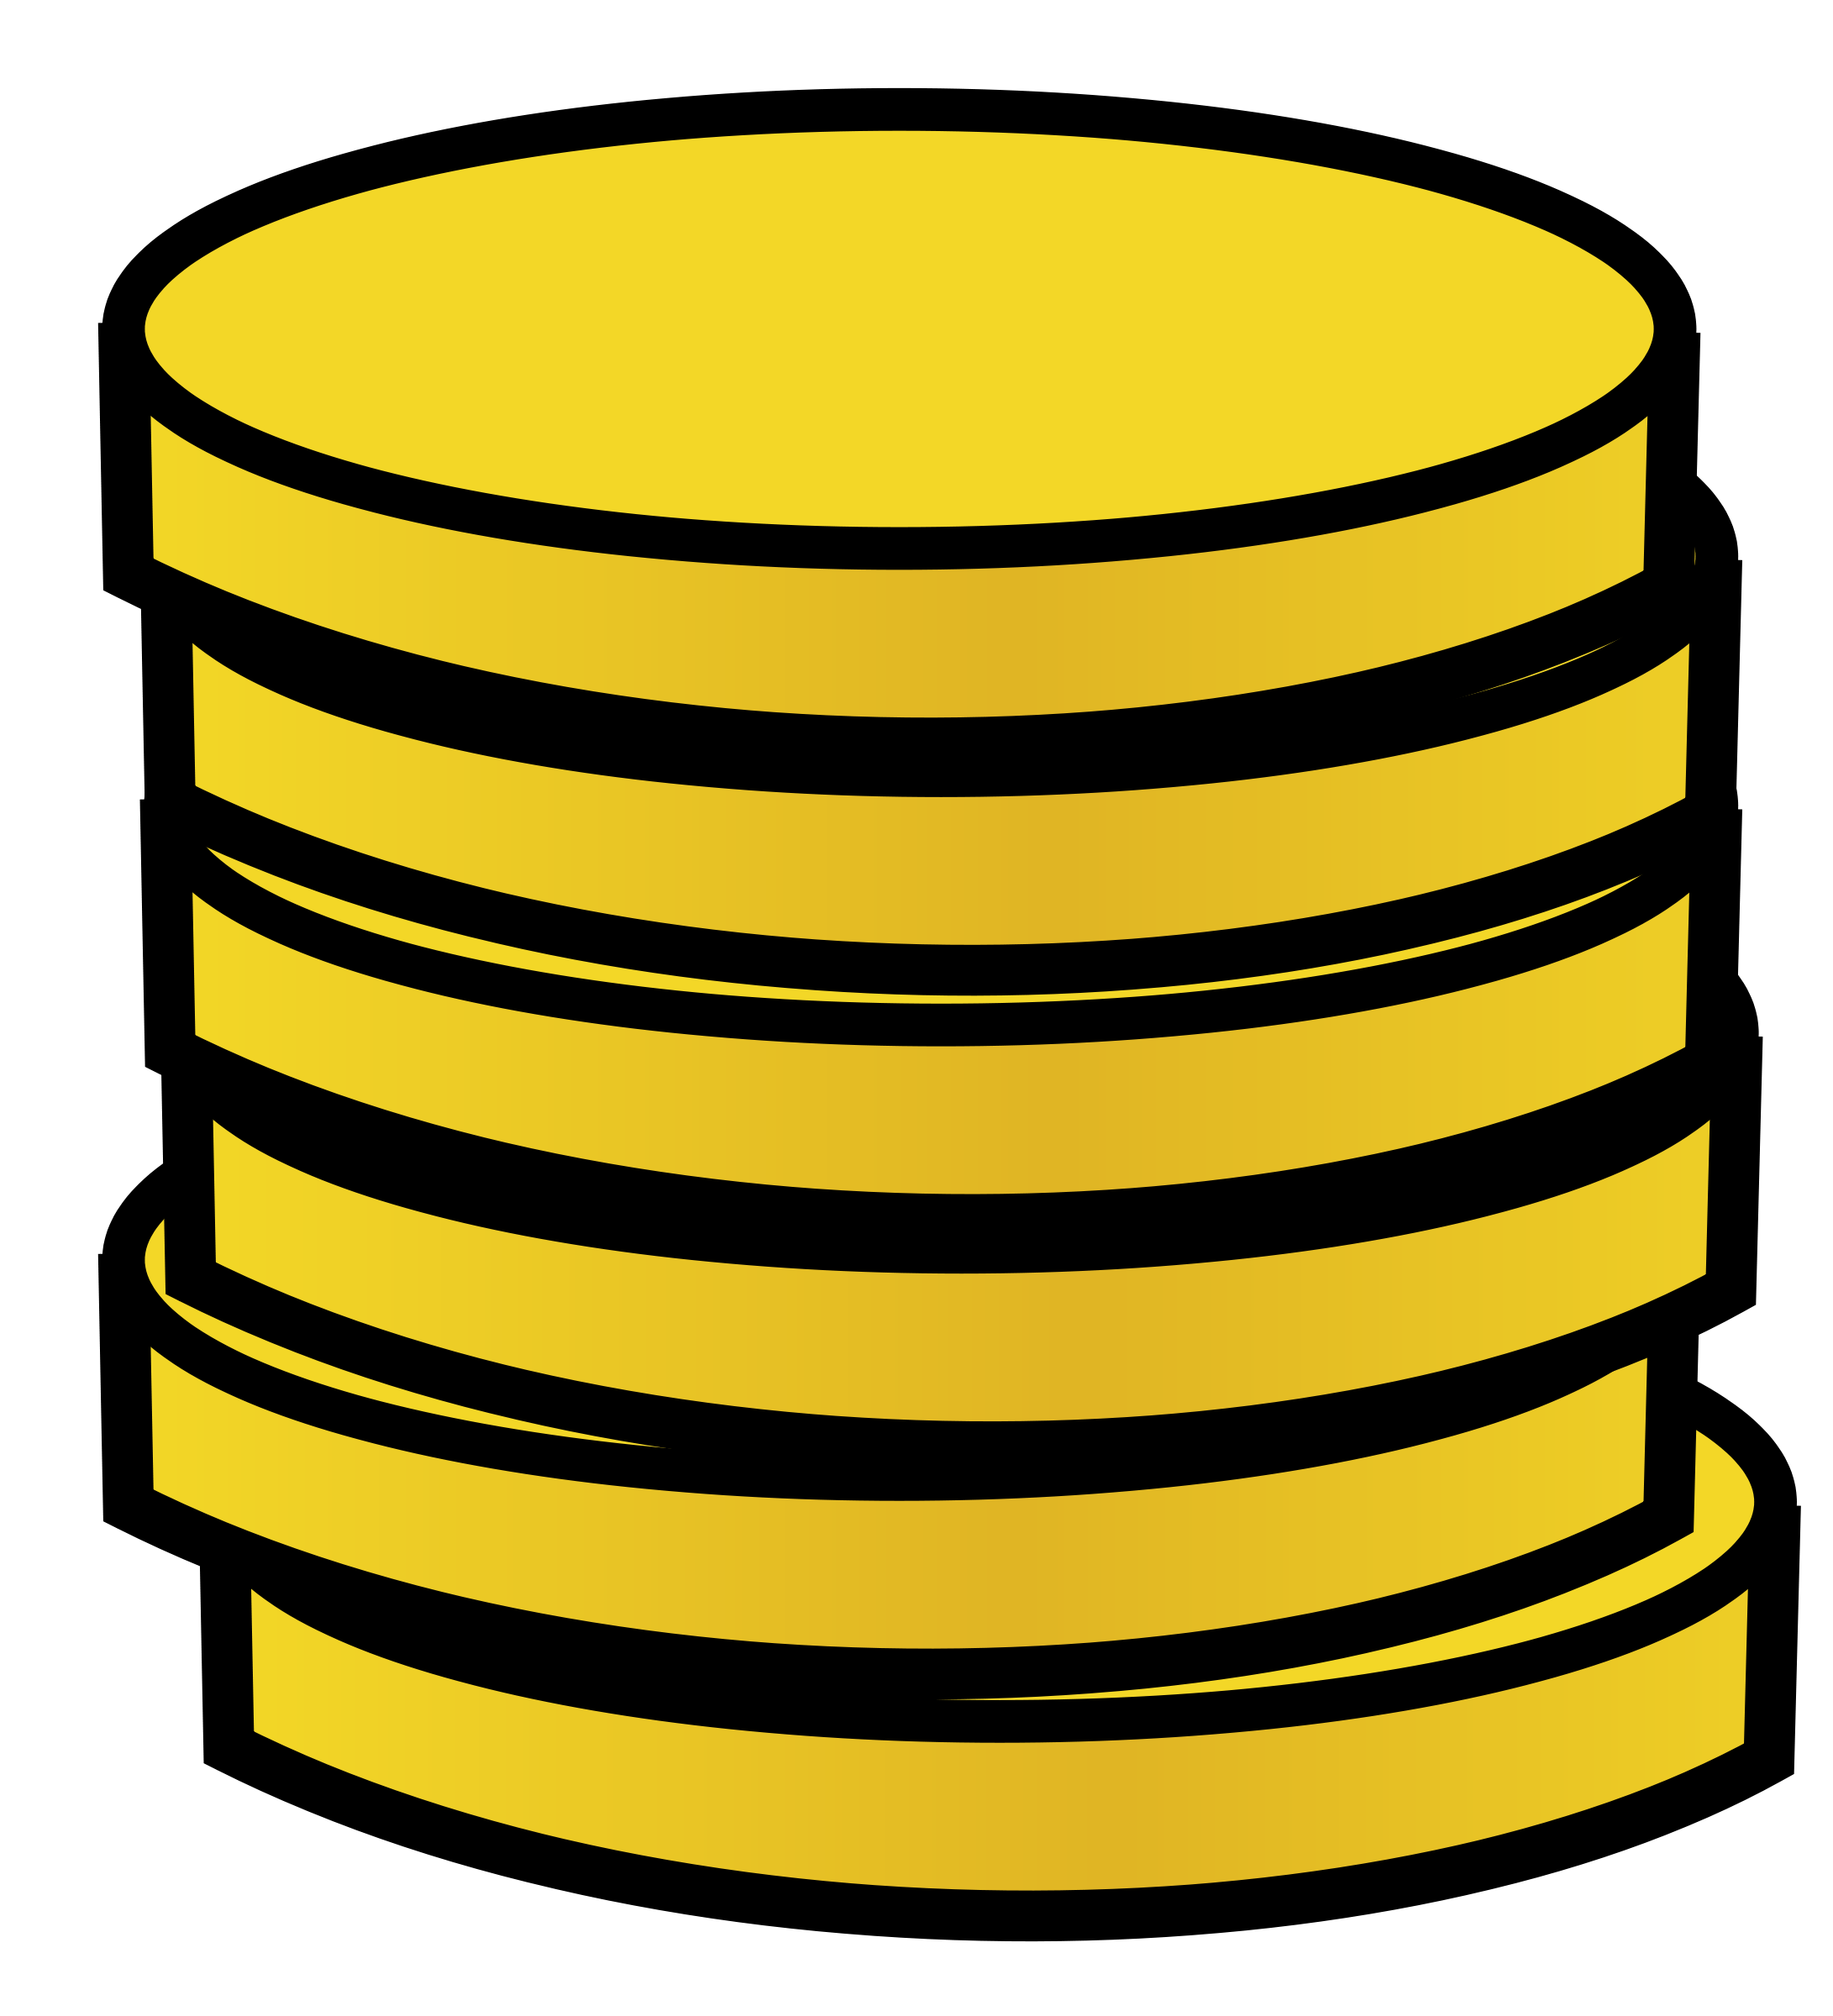 Coin image clipart clip library stock Gold coin Clipart | Clipart Panda - Free Clipart Images clip library stock